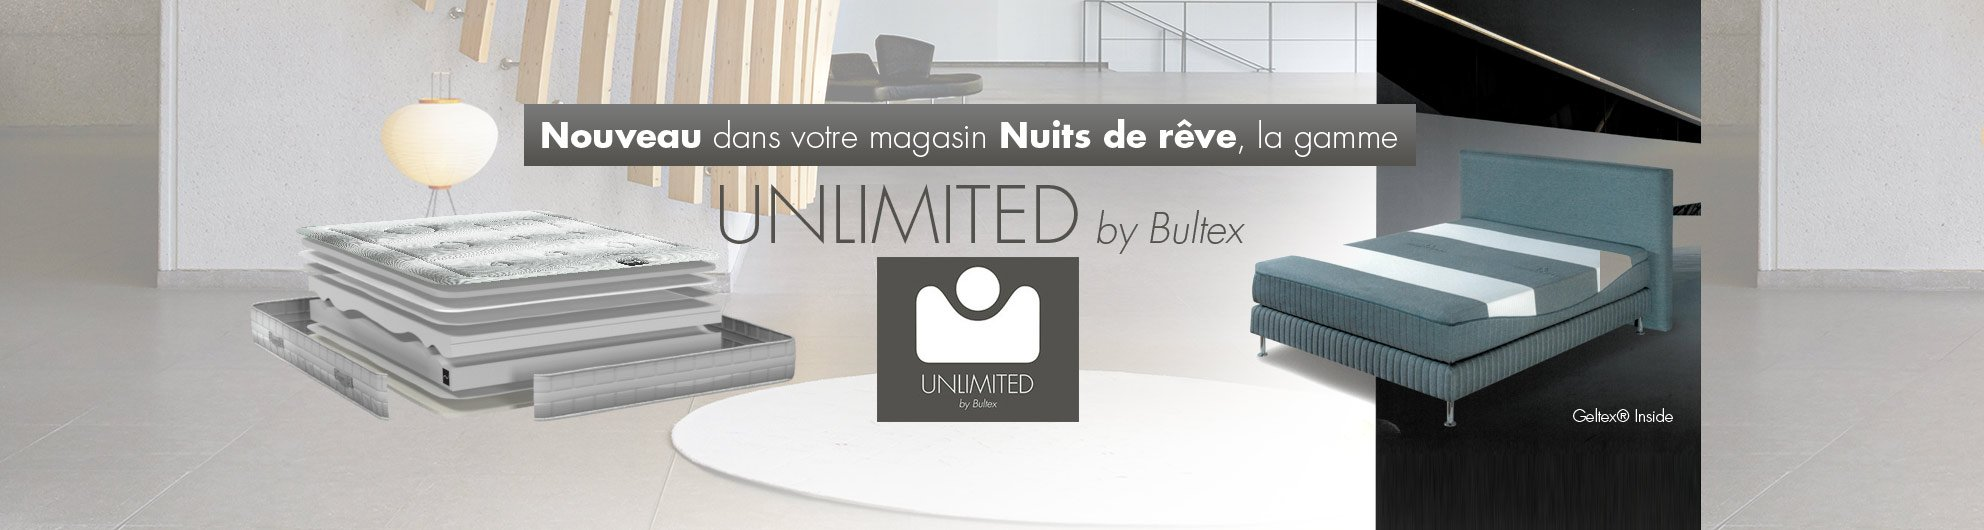 slider-accueil-UNLIMITED-BY-BULTEX